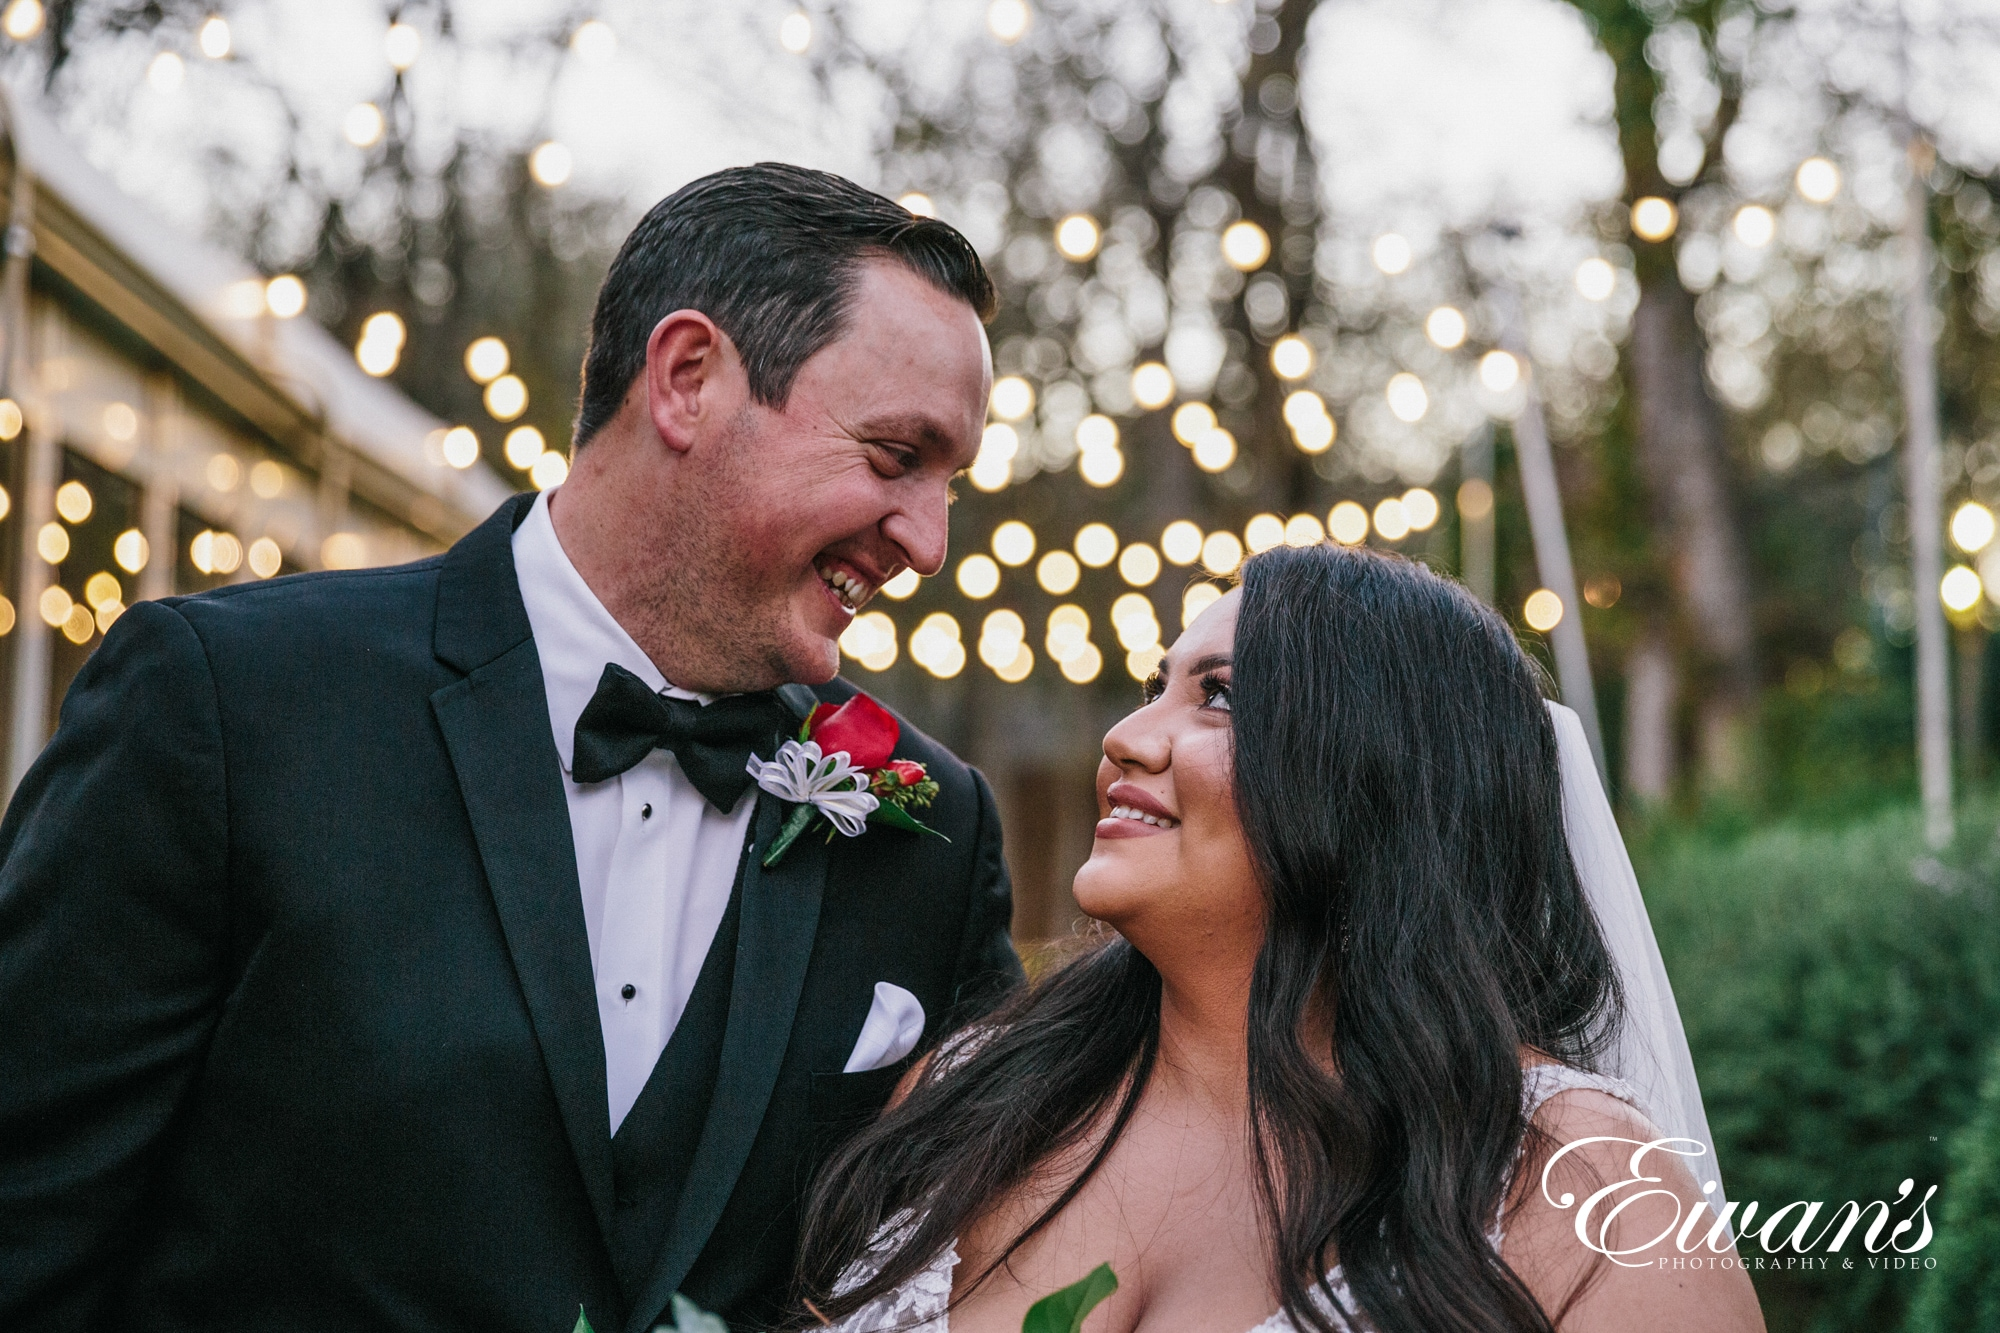 image of a bride and groom looking into each others eyes and smiling under fairy lights